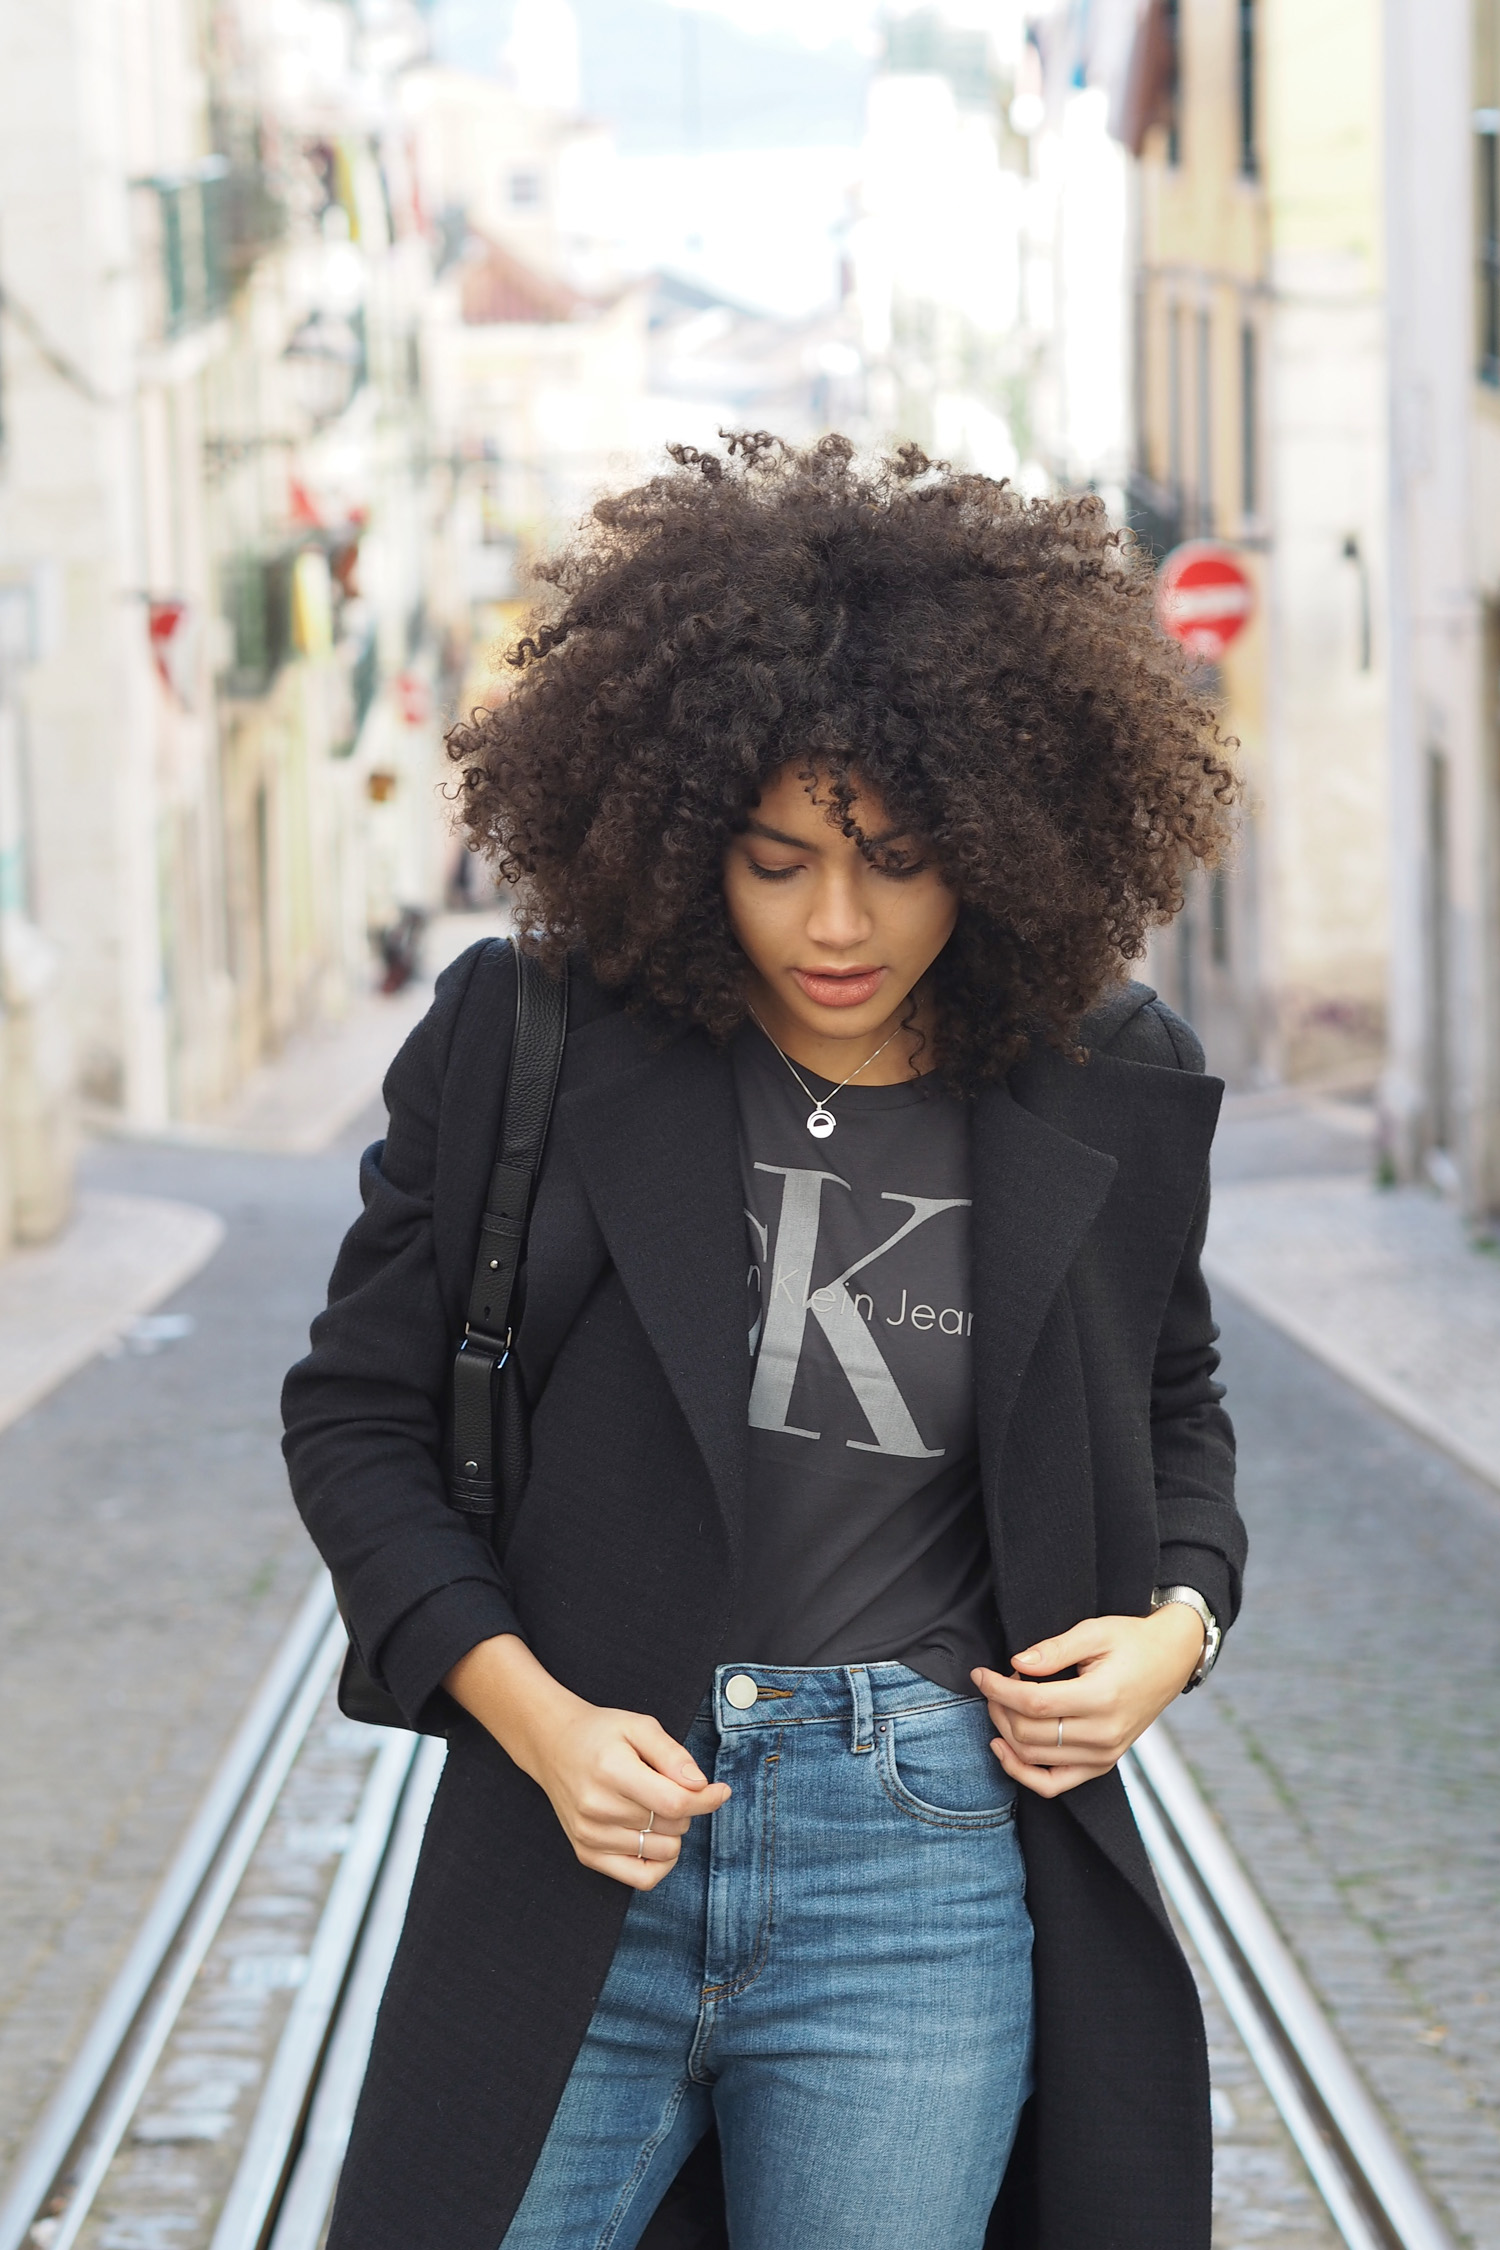 CALVIN KLEIN Tshirt outfit styling